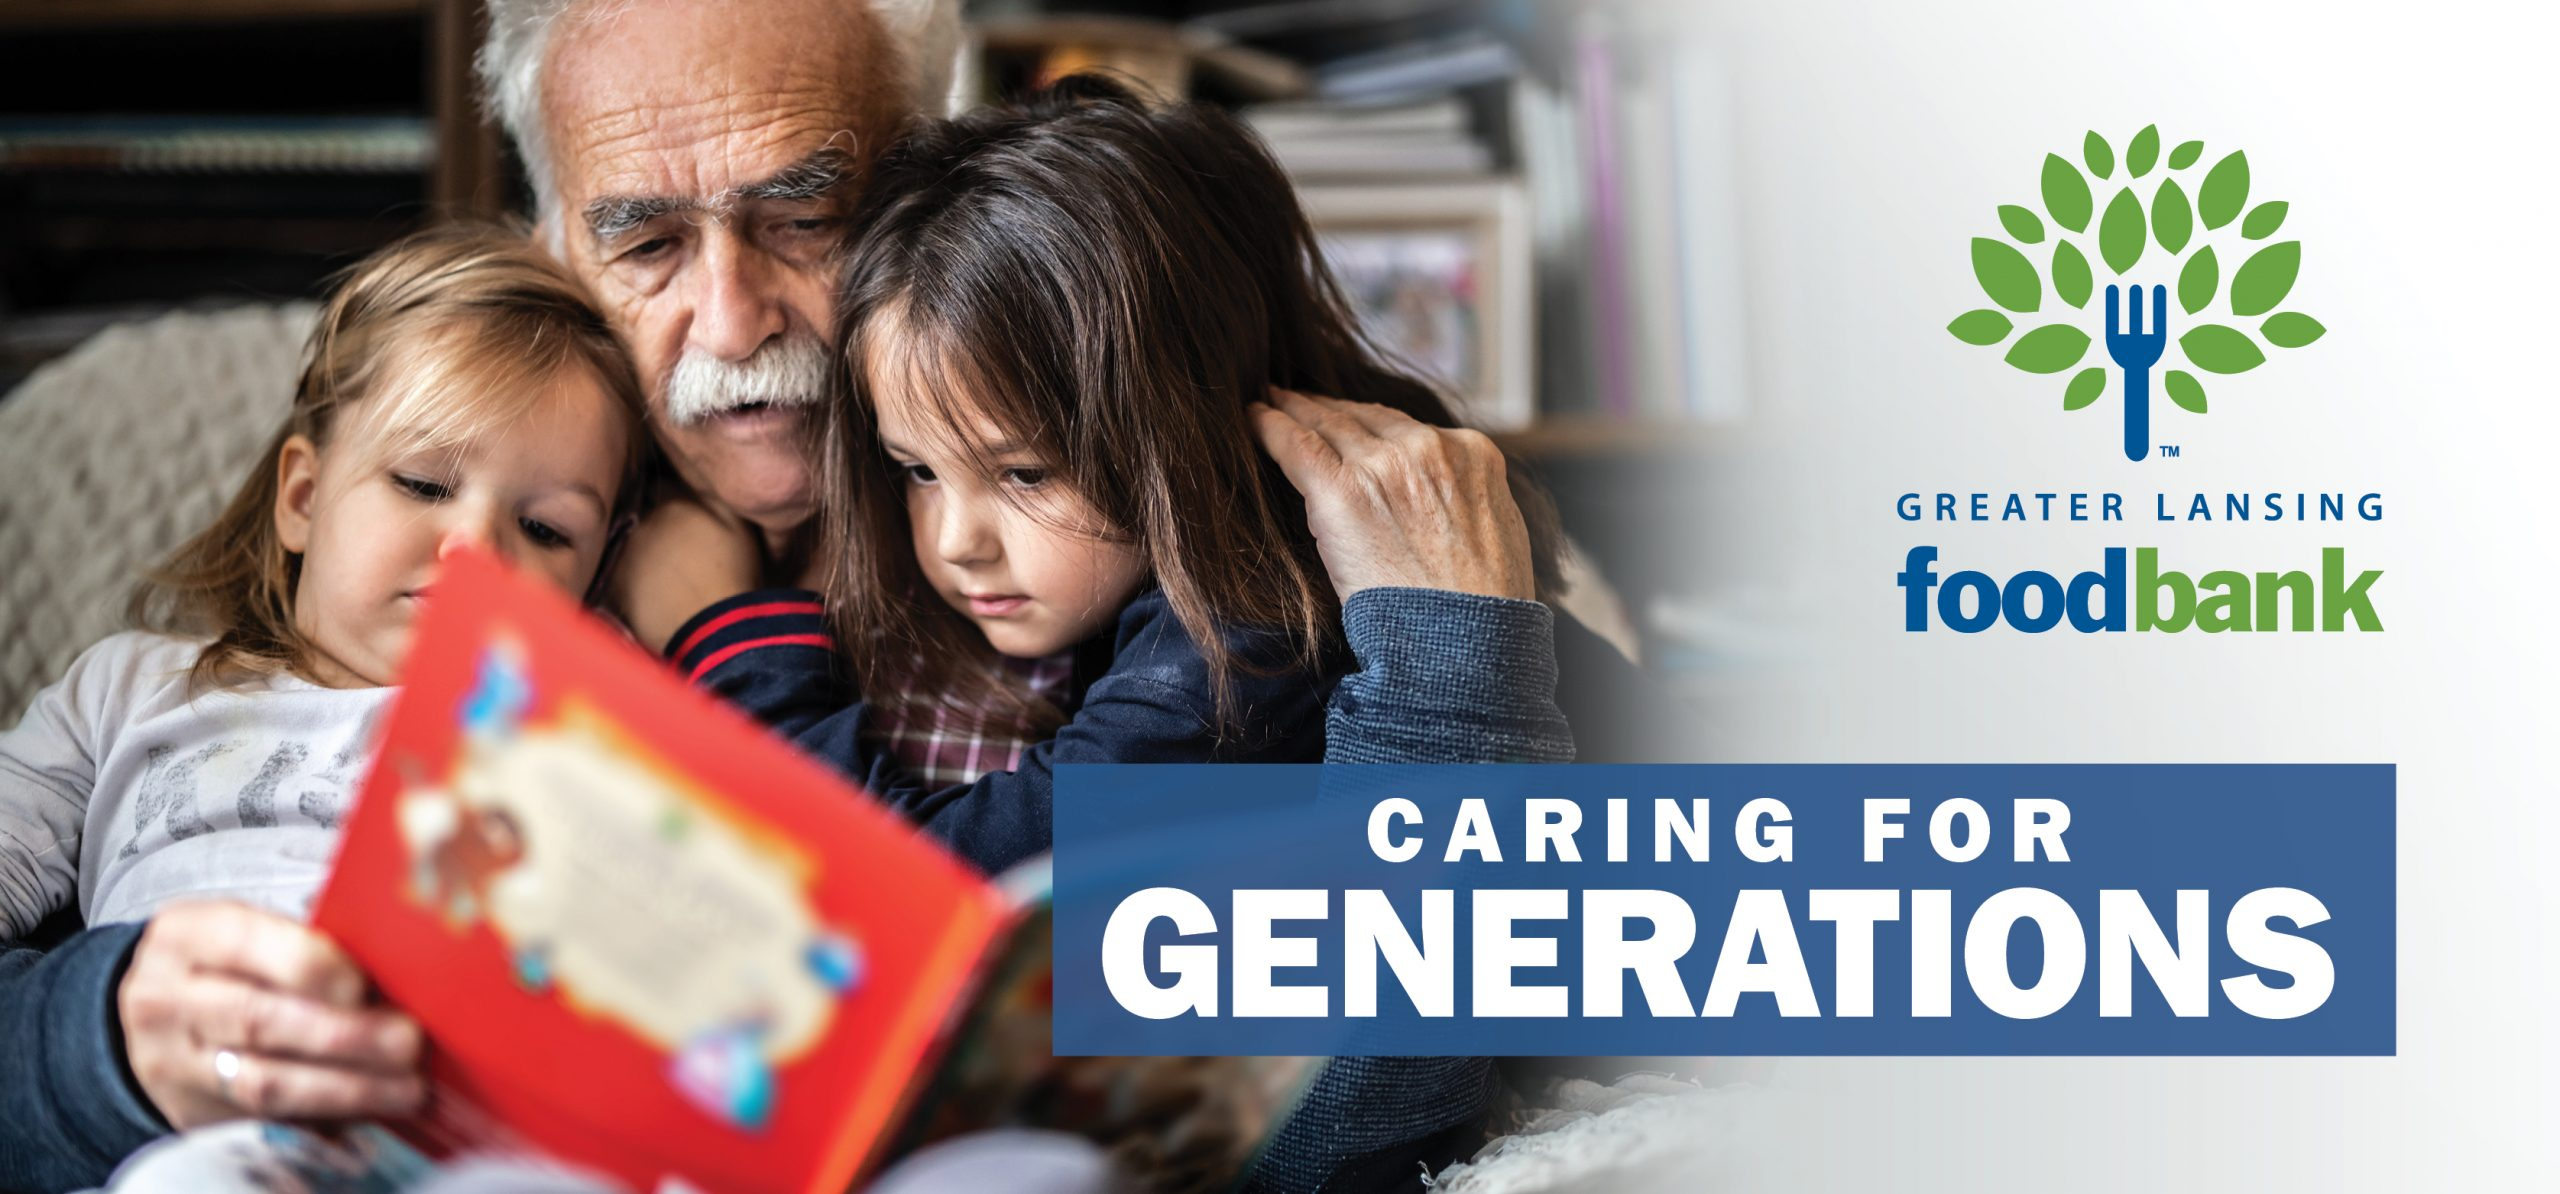 Caring for generations